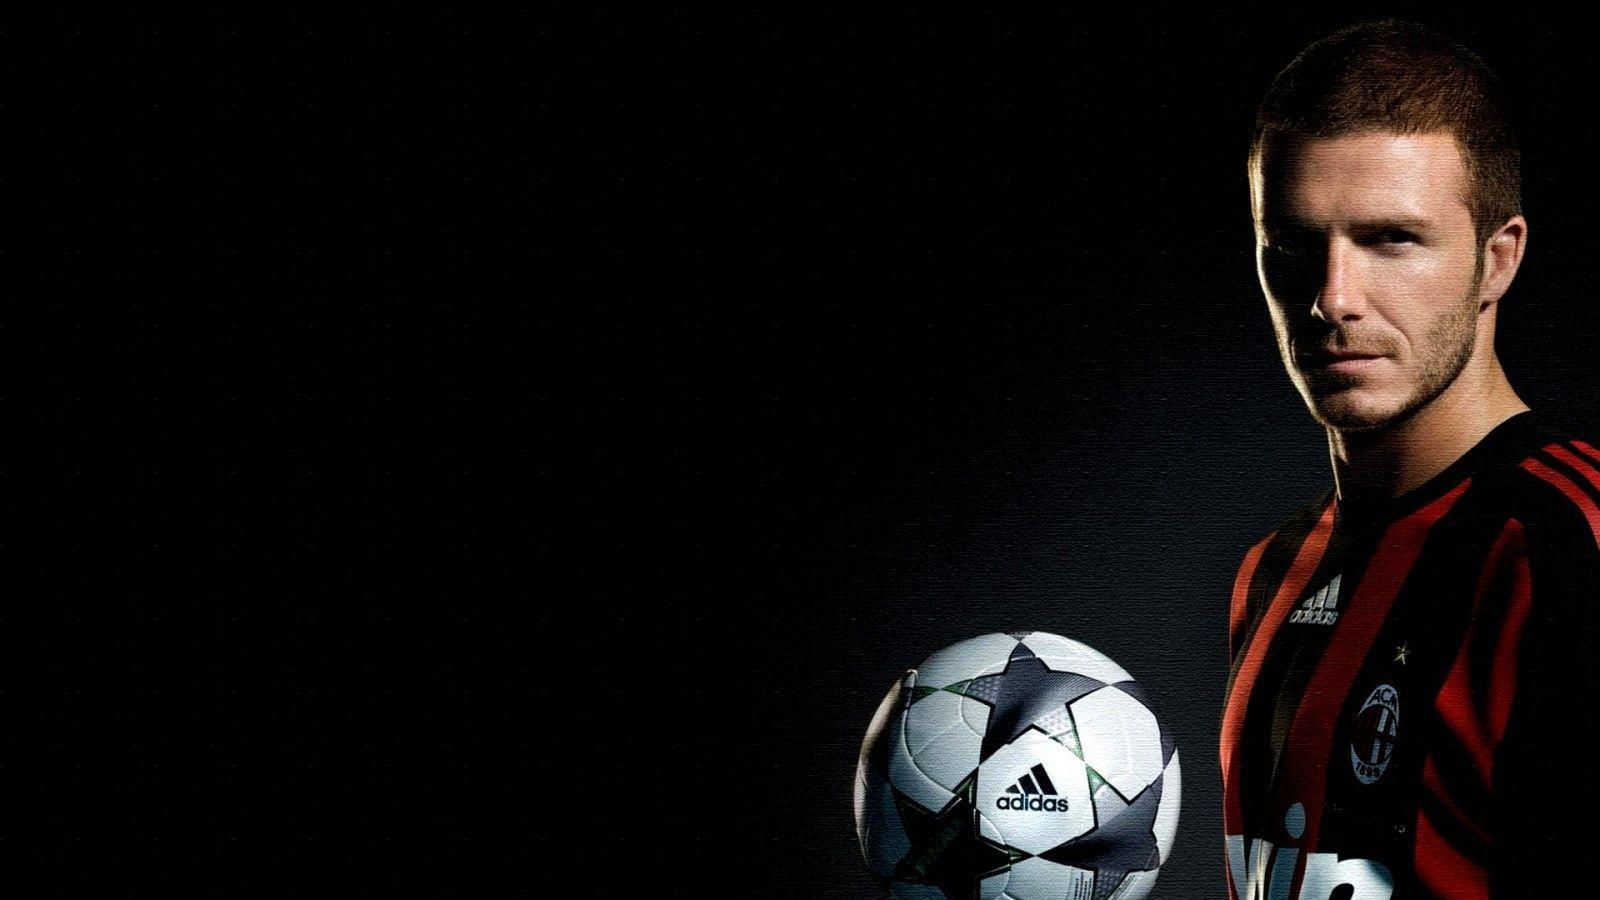 David Beckham Wallpapers 1600x900